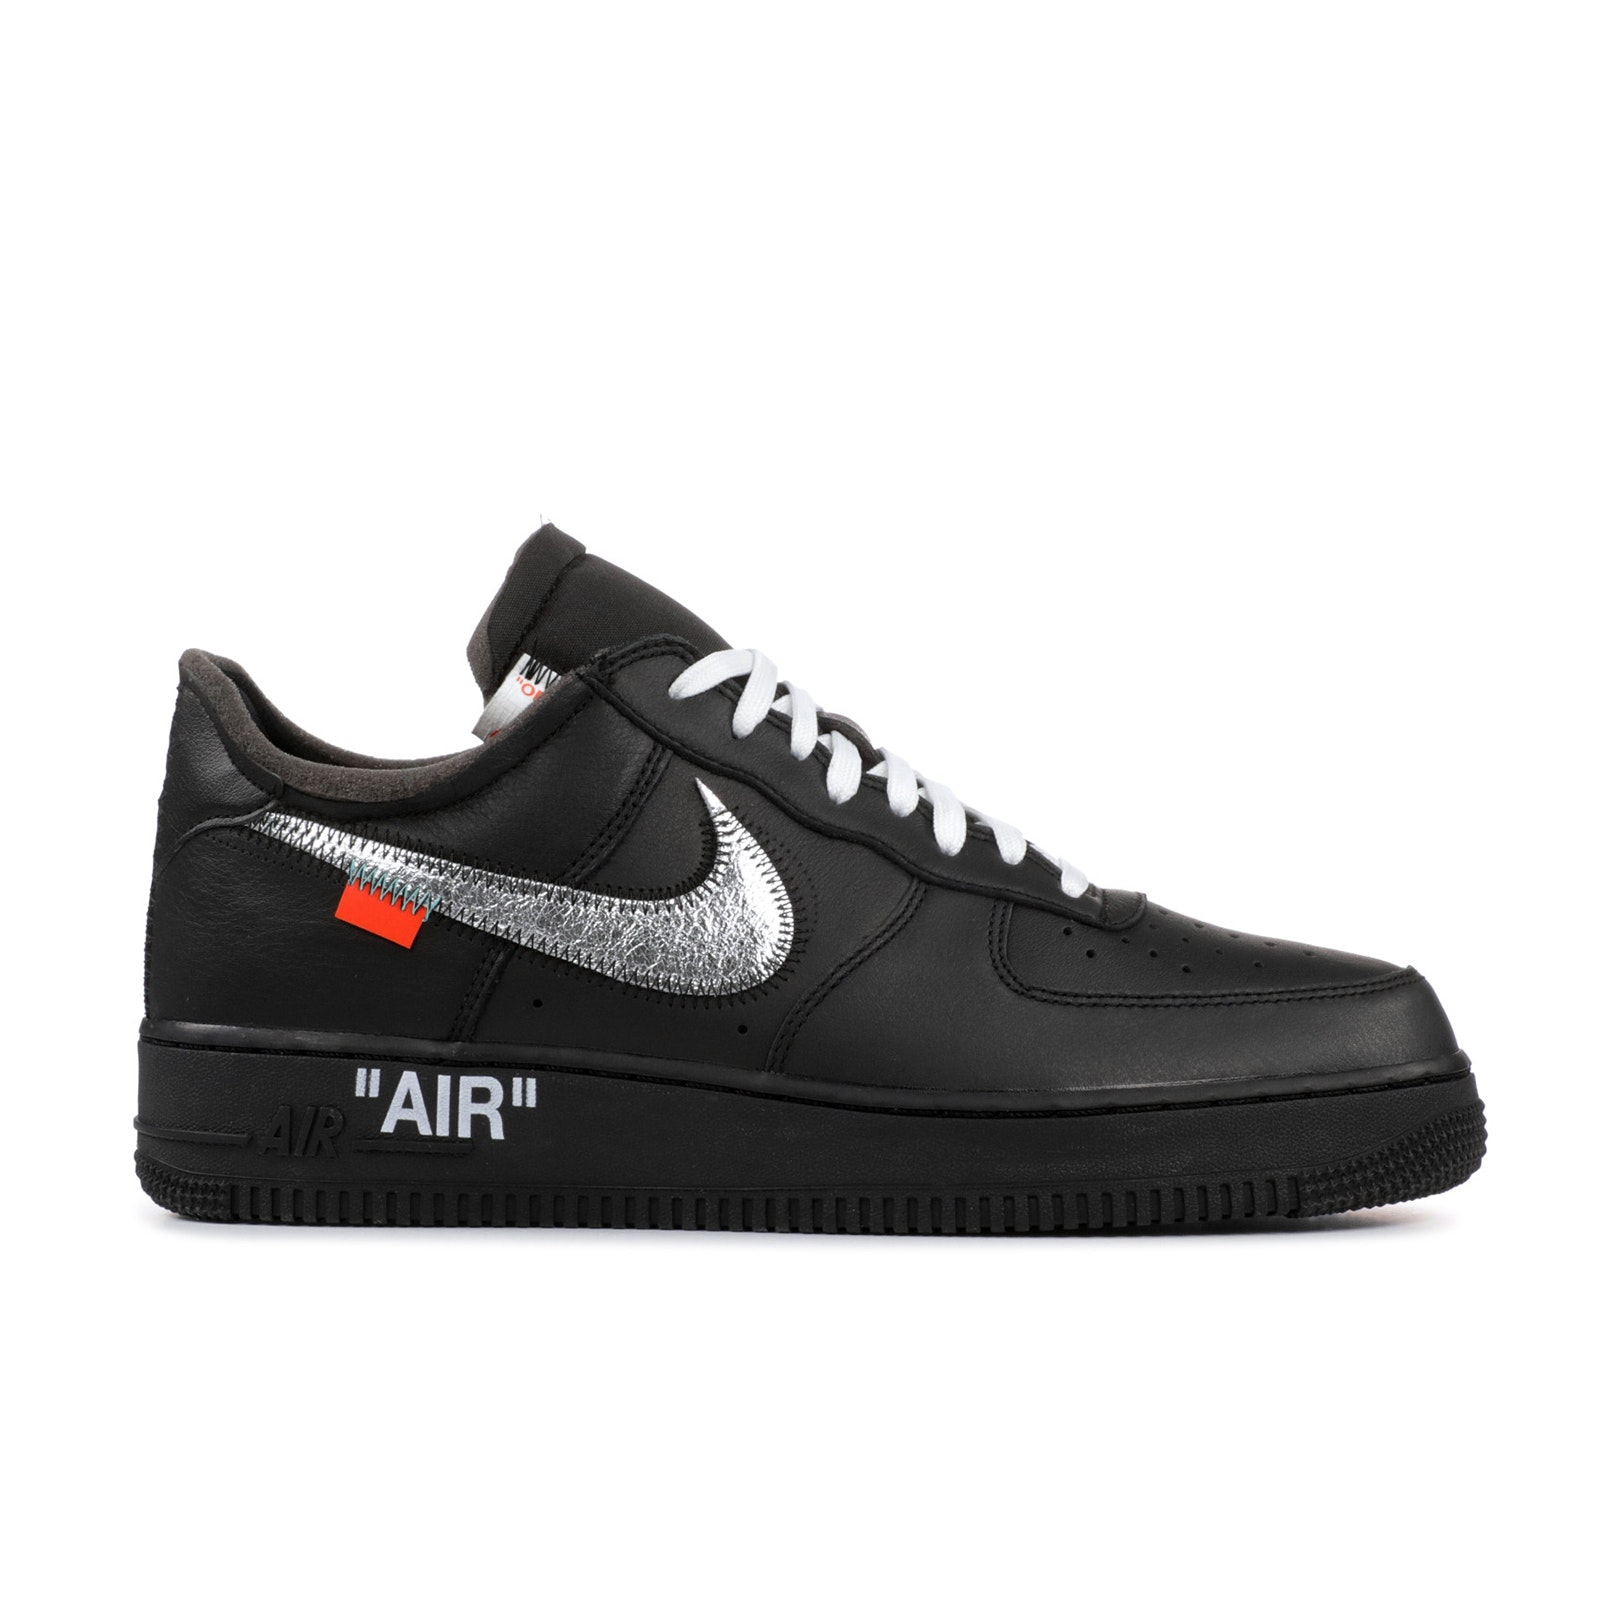 hot sales 6f0f0 6f86e A Definitive Ranking of Virgil Abloh s Off-White Nike Collabs    ONE37pm